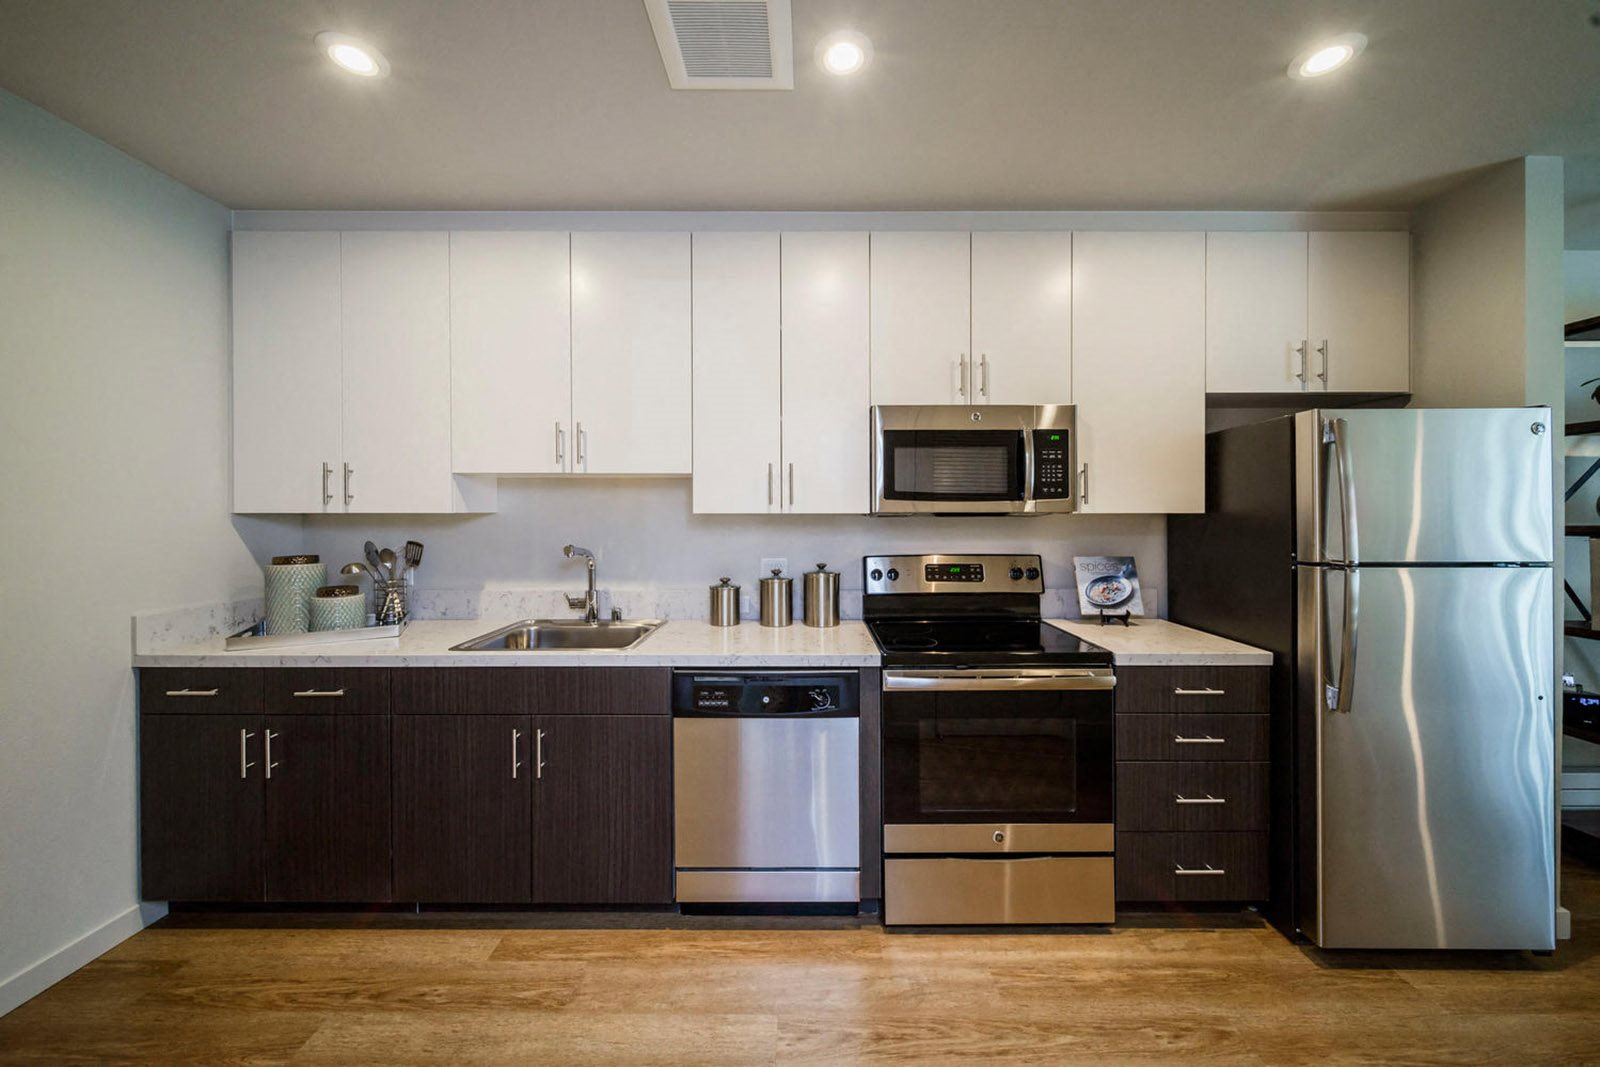 ModelHomes-GE stainless steel appliances